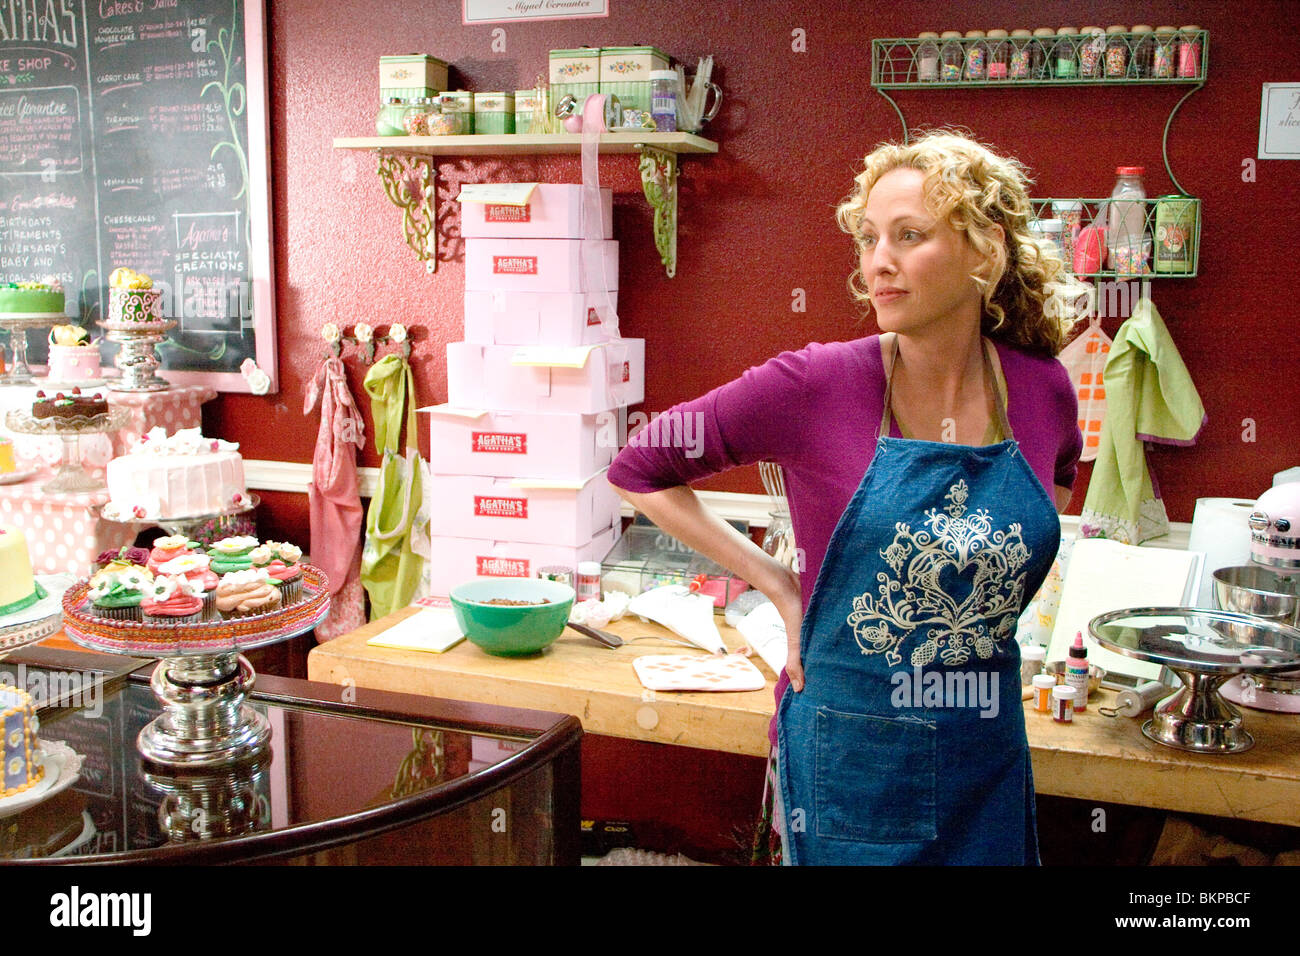 THE NUMBER 23 (2007) VIRGINIA MADSEN NO23 001-19 - Stock Image